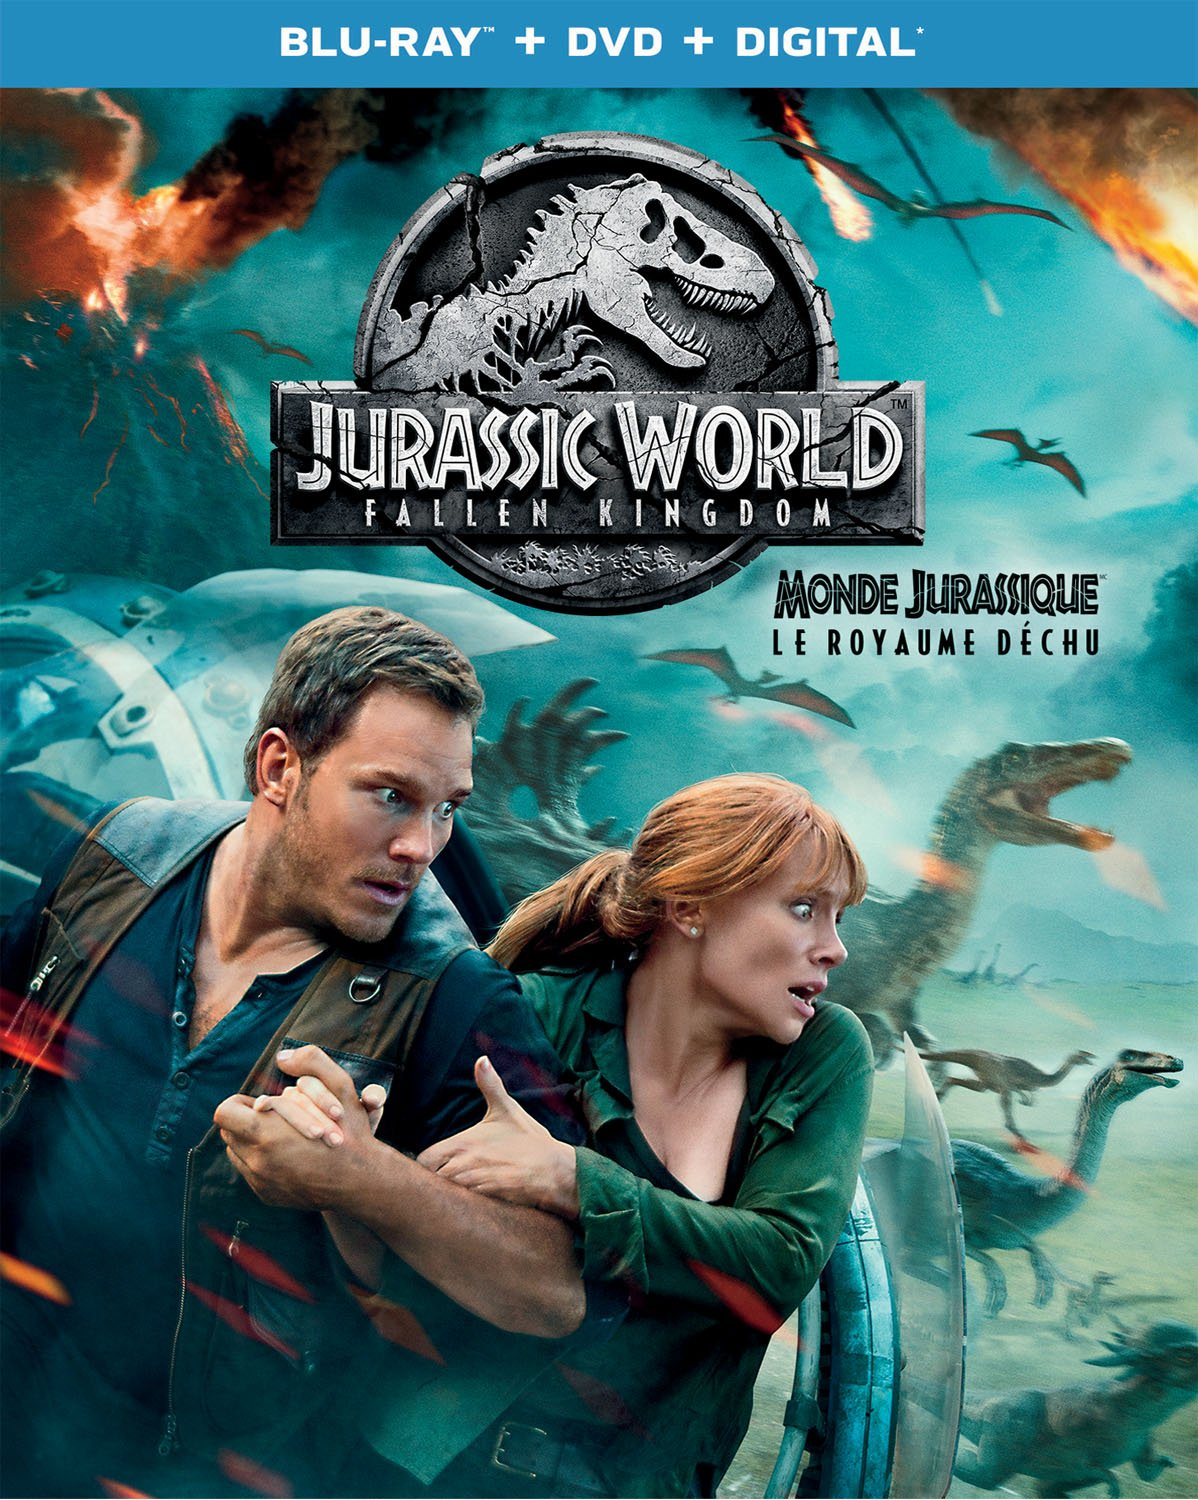 Jurassic World: Fallen Kingdom [BD Combo Pack] [Blu-ray] (Sous-titres français) Chris Pratt Bryce Dallas Howard Rafe Spall Justice Smith